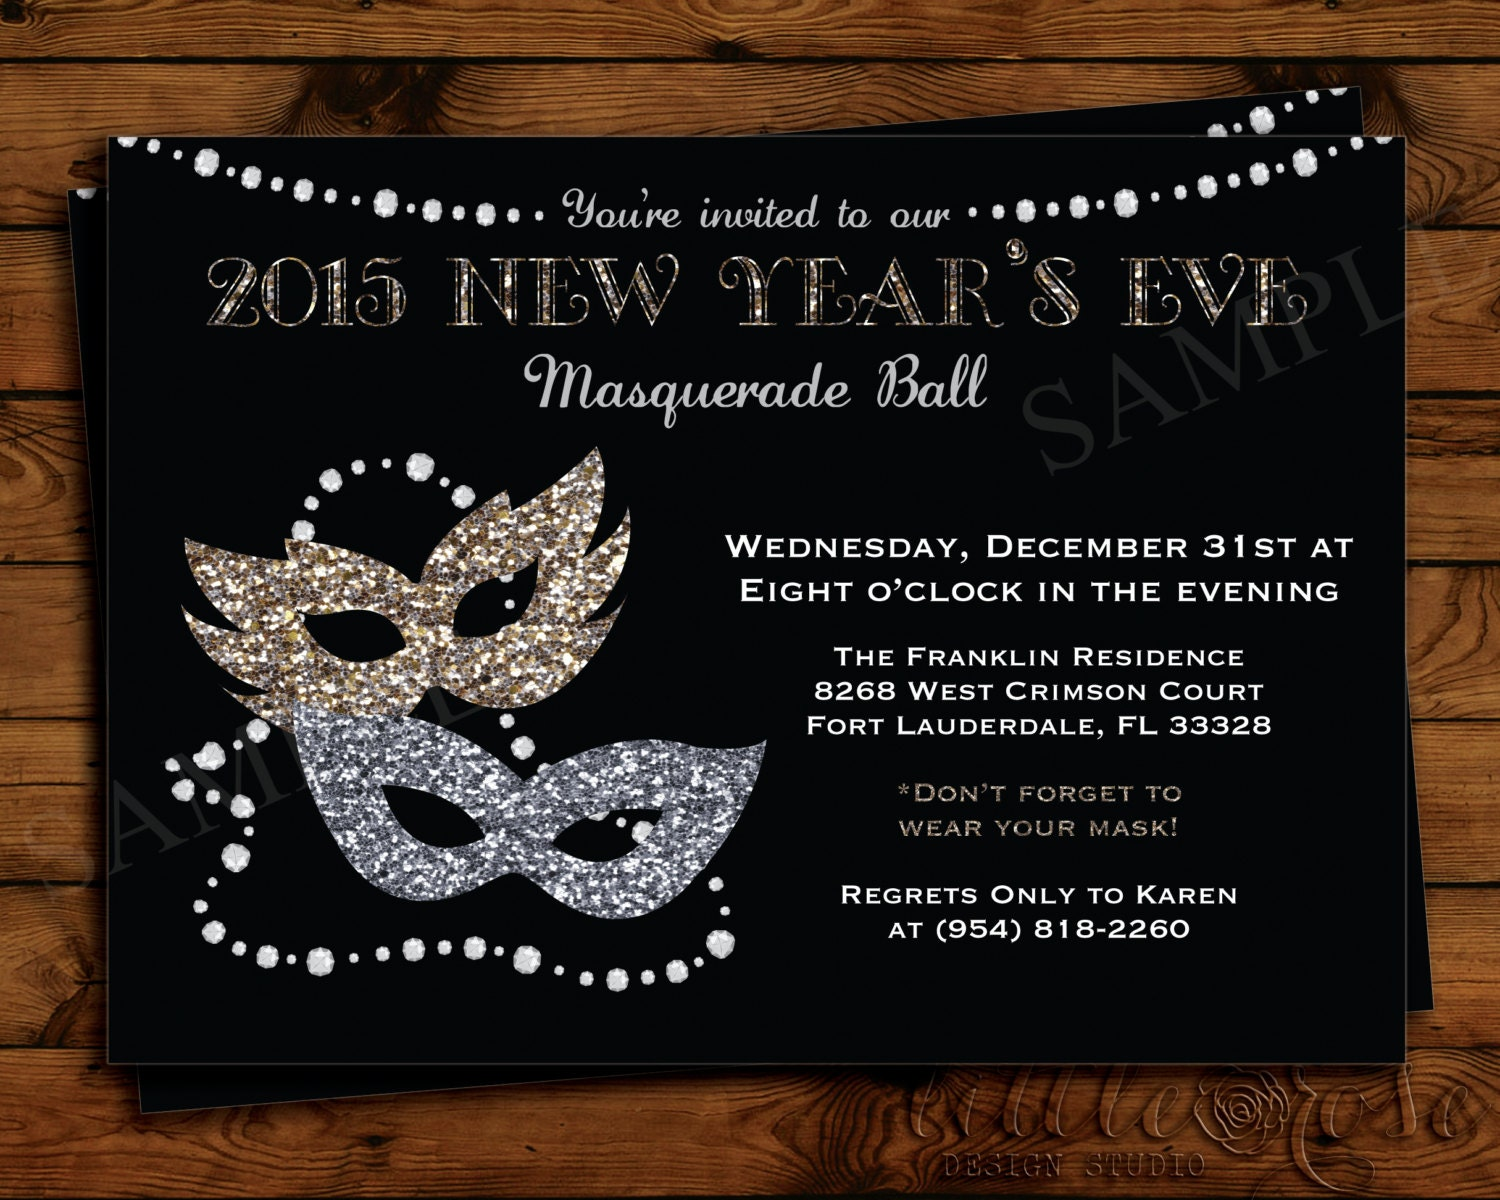 New Years Eve Facebook Banner New Year's Eve Masquerade